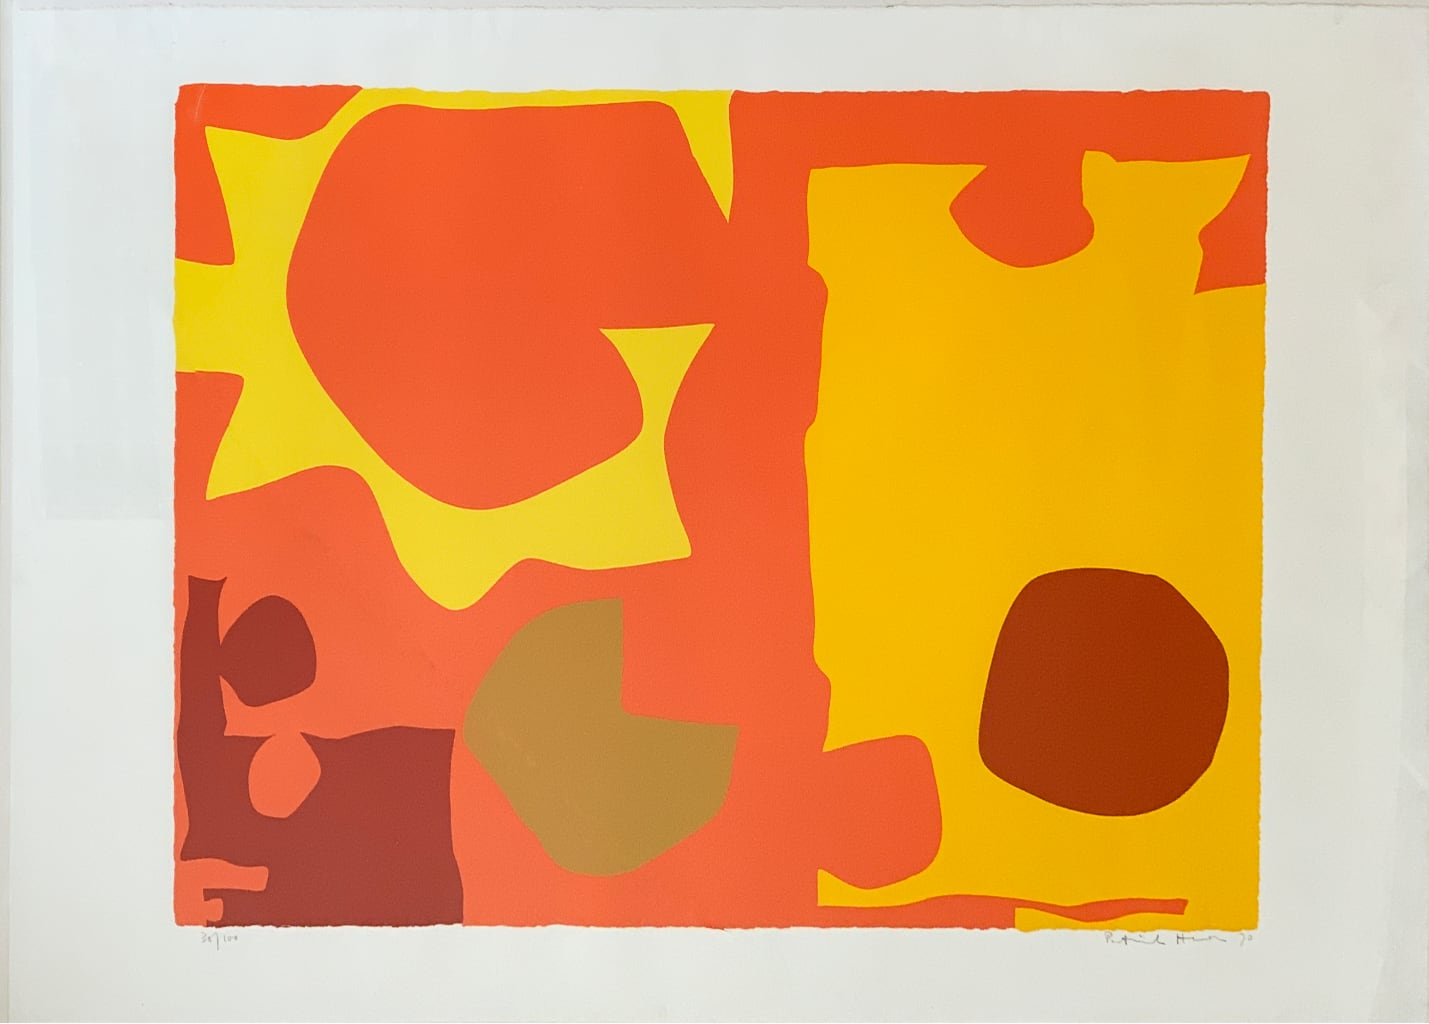 Patrick Heron - Six in Light Orange with Red in Yellow (April 1970)